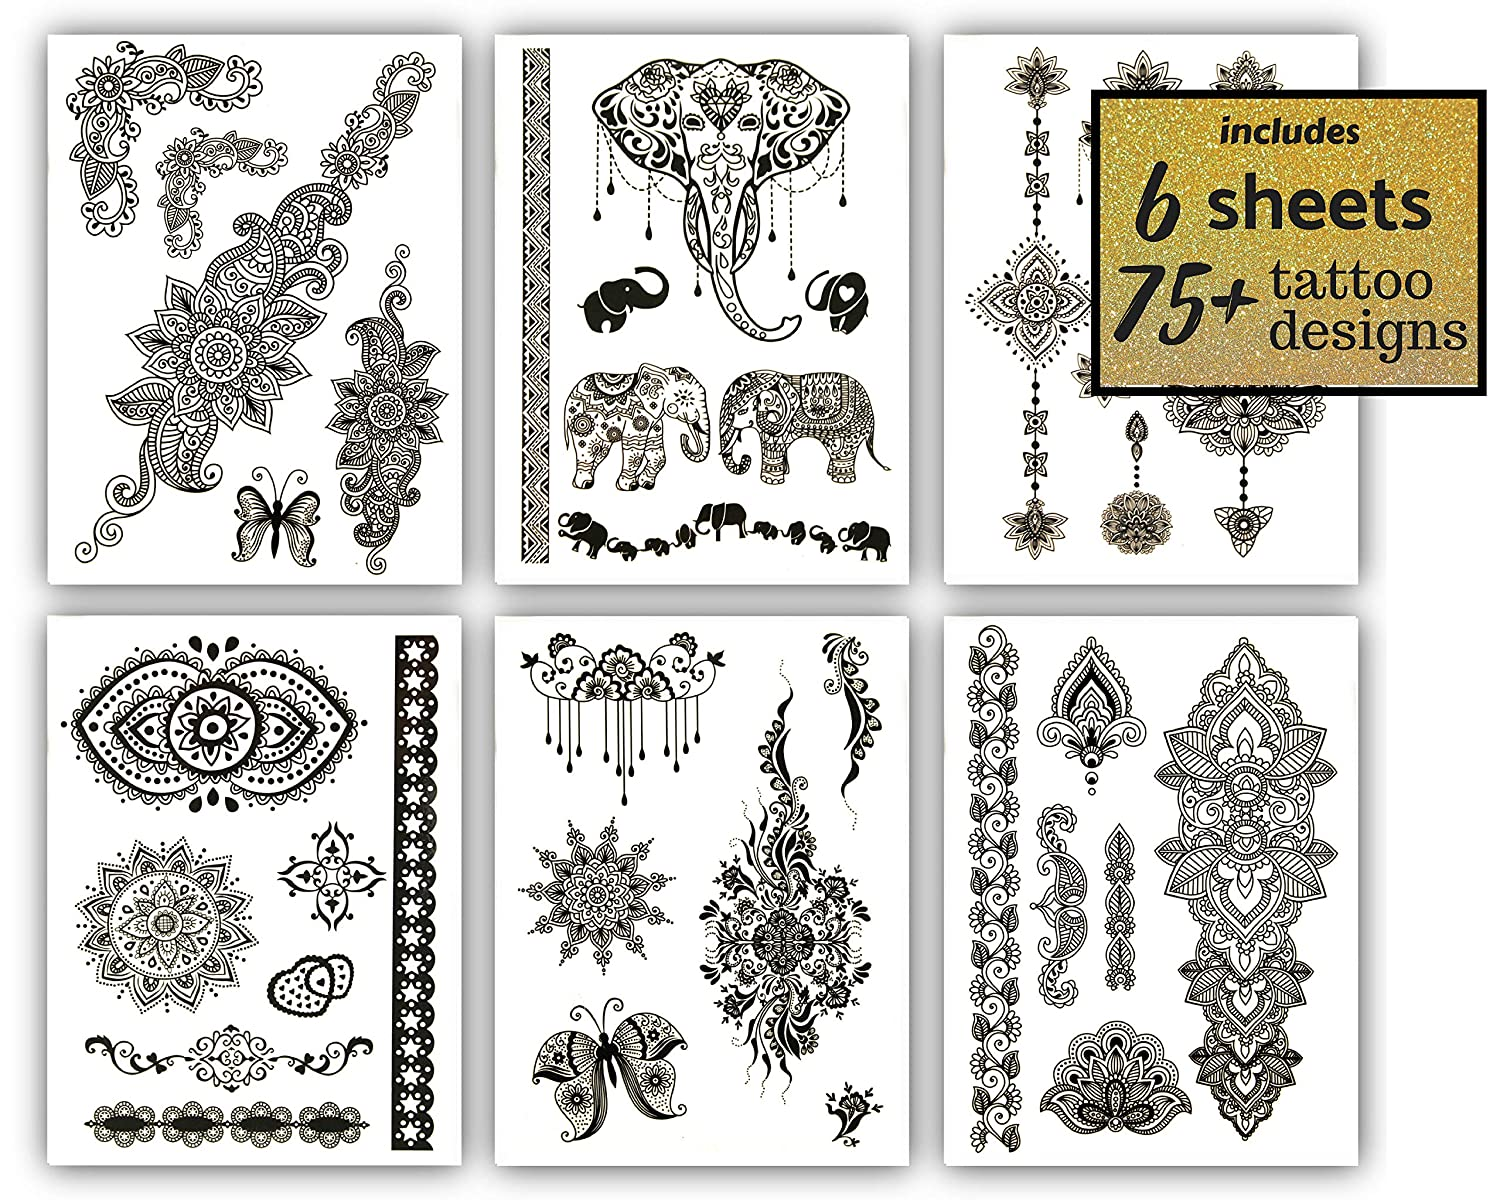 18fbecce8 Amazon.com : Mehndi Henna Temporary Tattoos Black - Over 50 Designs (6  Sheets) Terra Tattoos Giselle Collection : Beauty